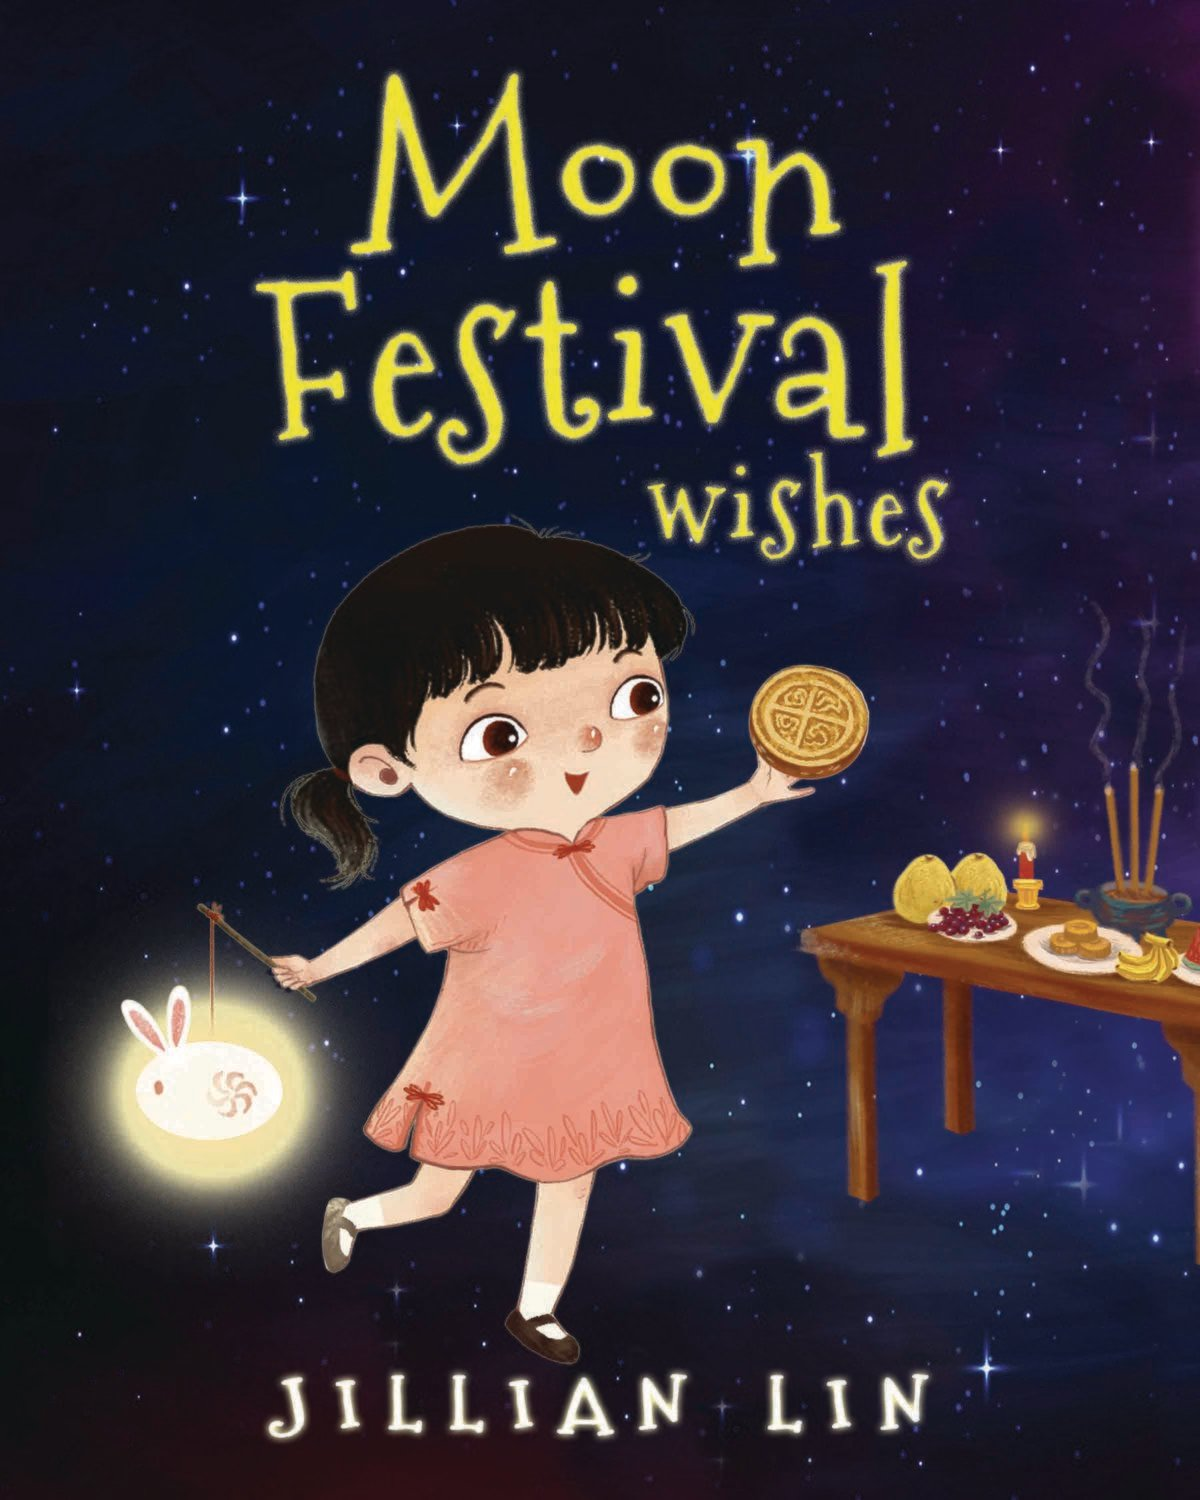 Moon Festival Wishes